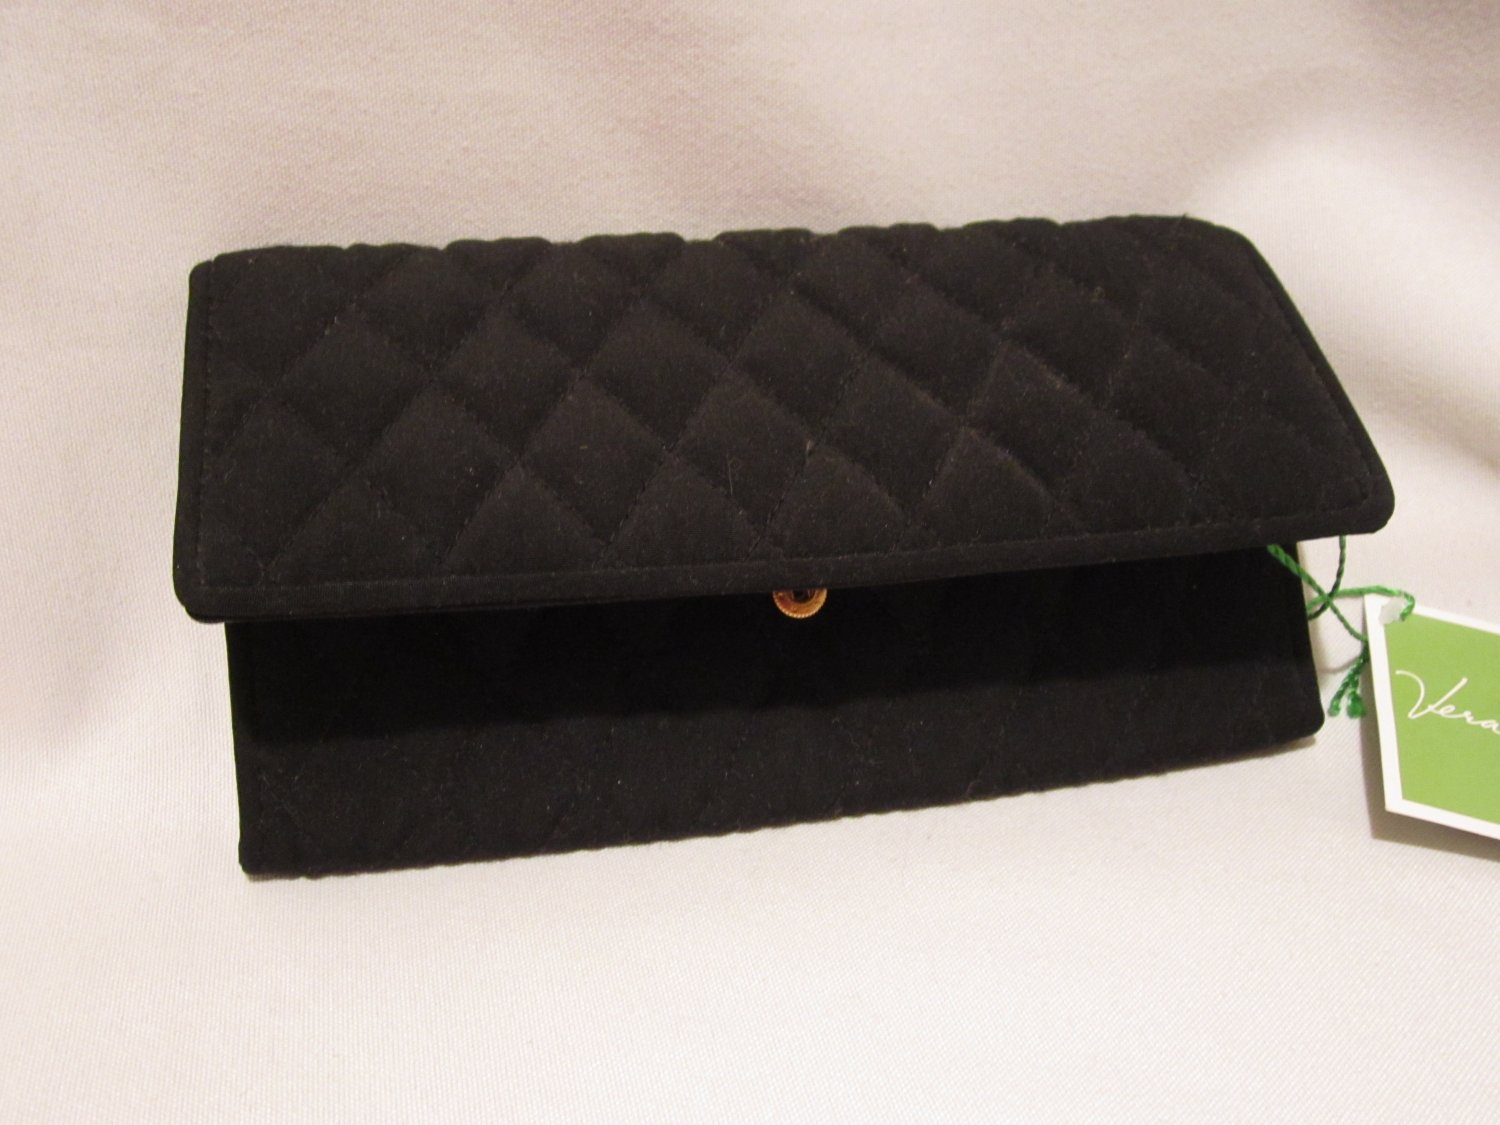 Vera Bradley Clutch Wallet Black microfiber • NWT Retired • wristlet evening bag